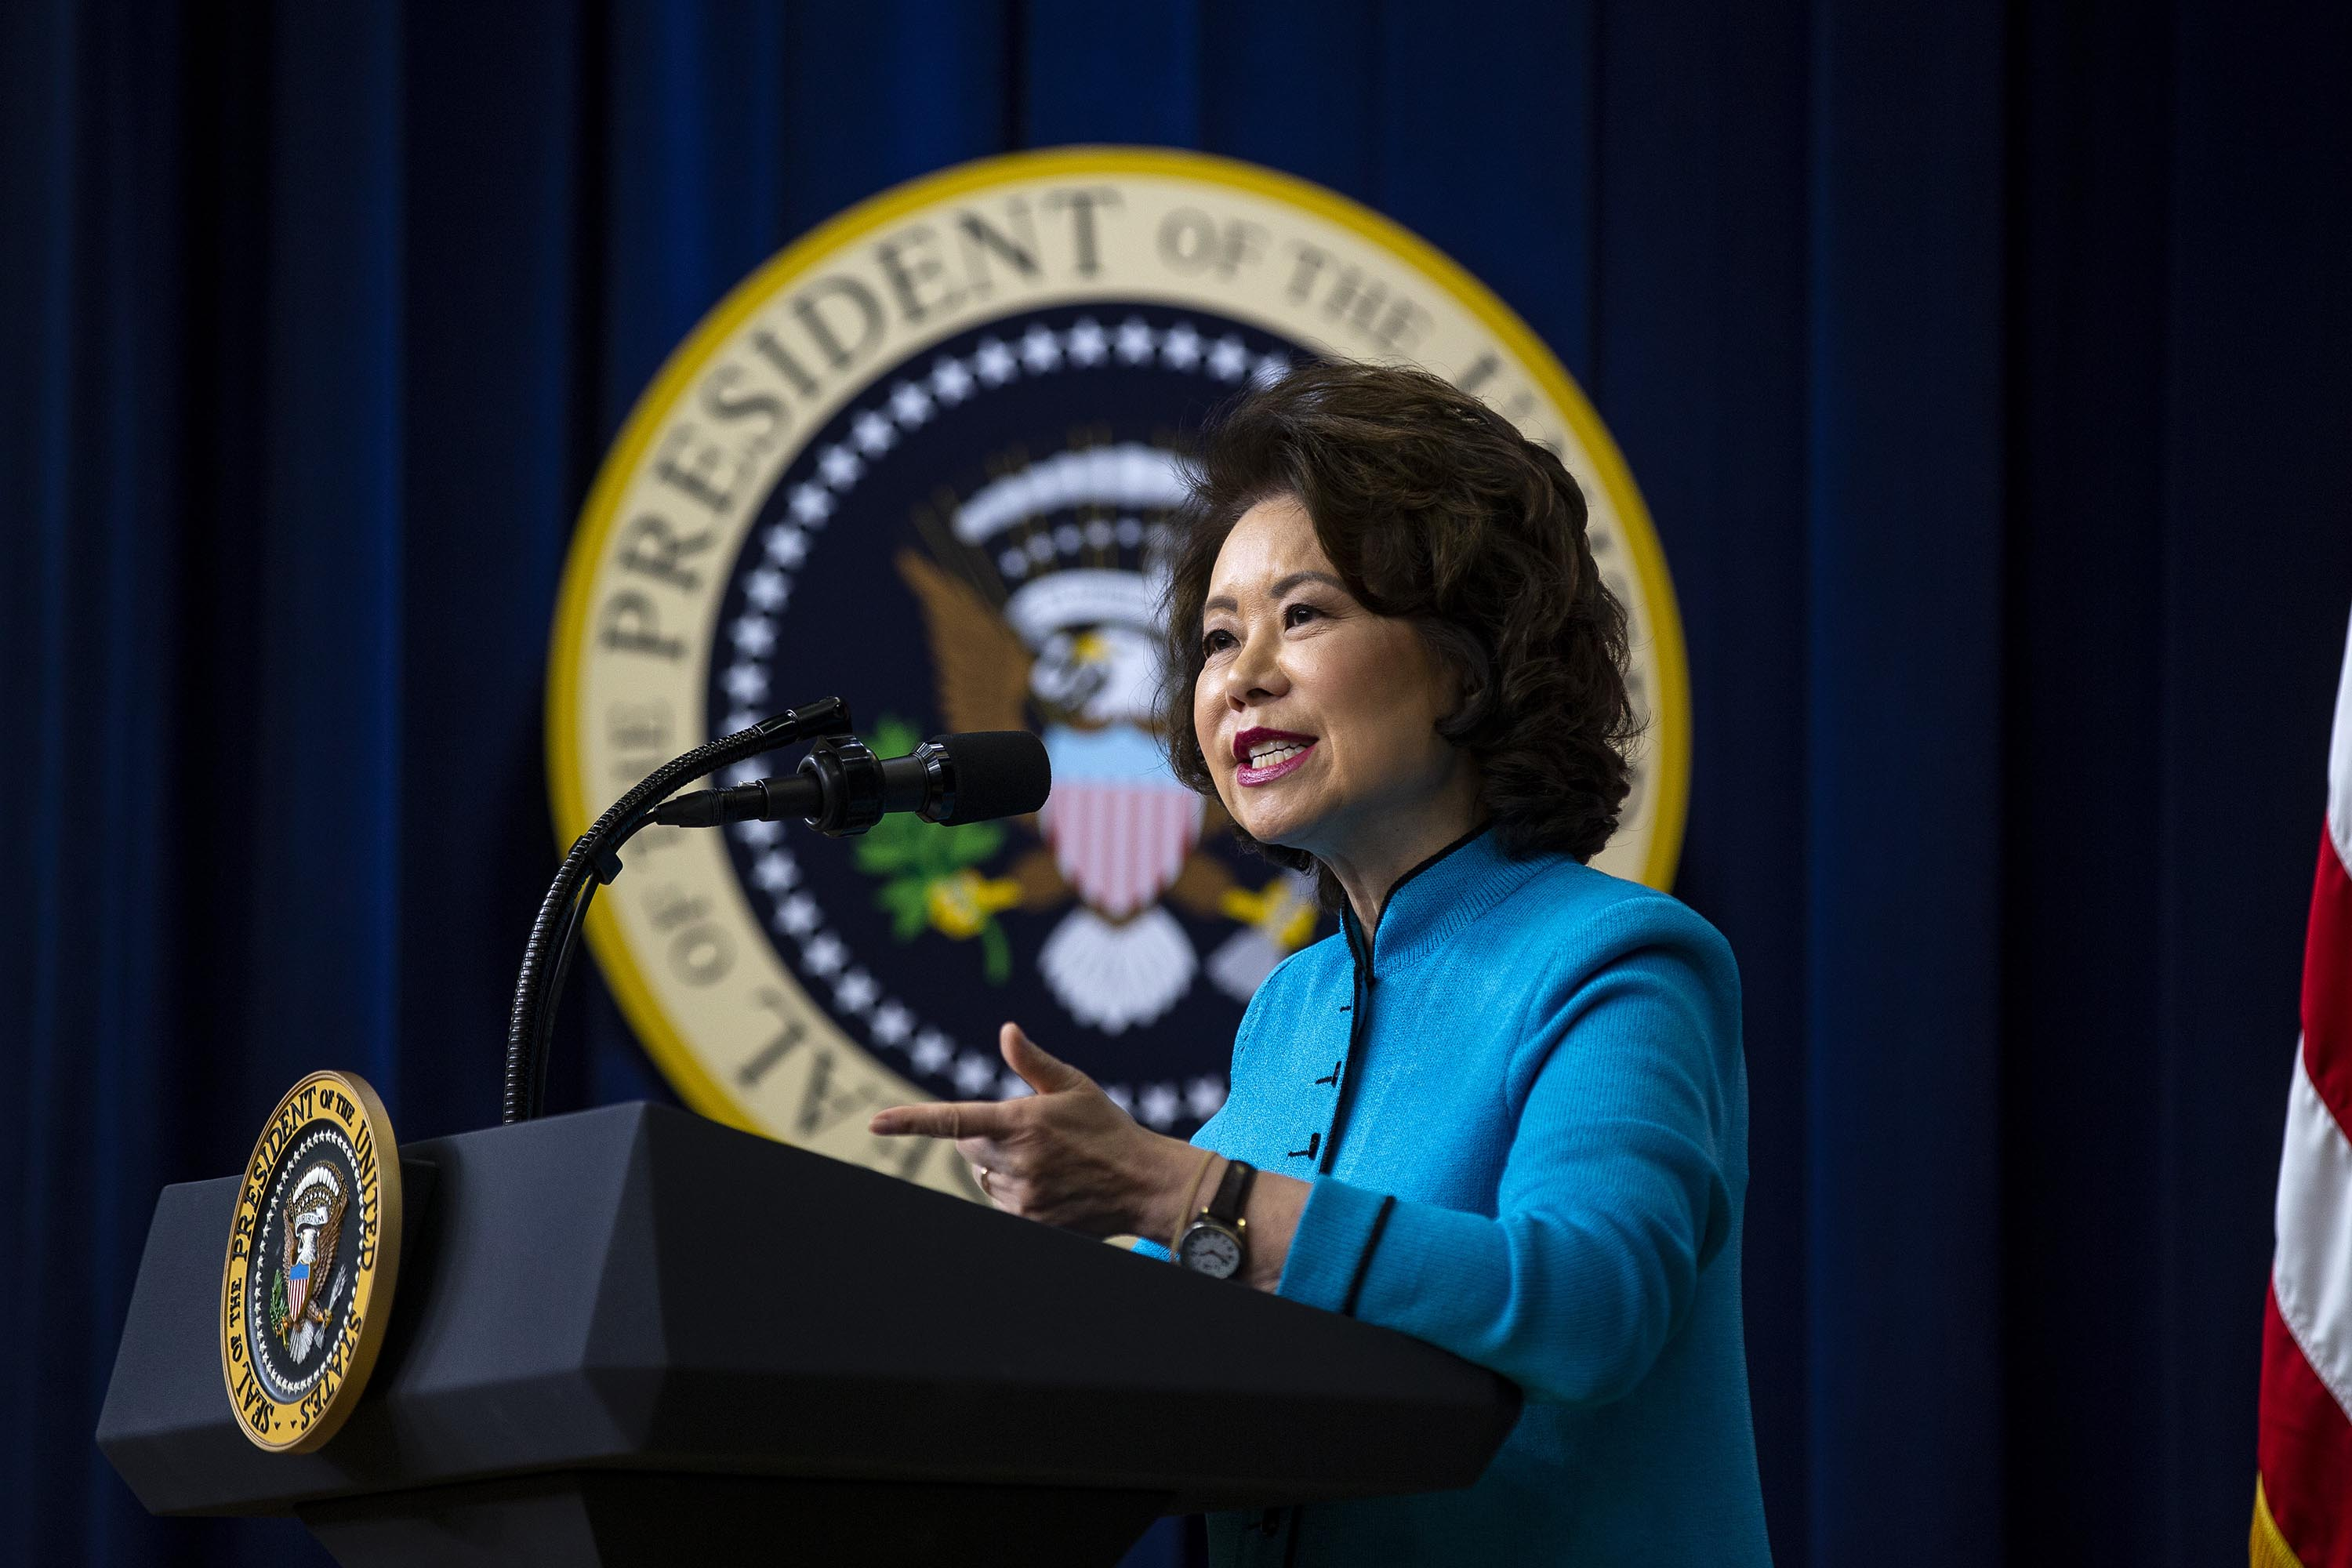 Elaine Chao, U.S. secretary of transportation, speaks in Washington, D.C., on October 23, 2018.